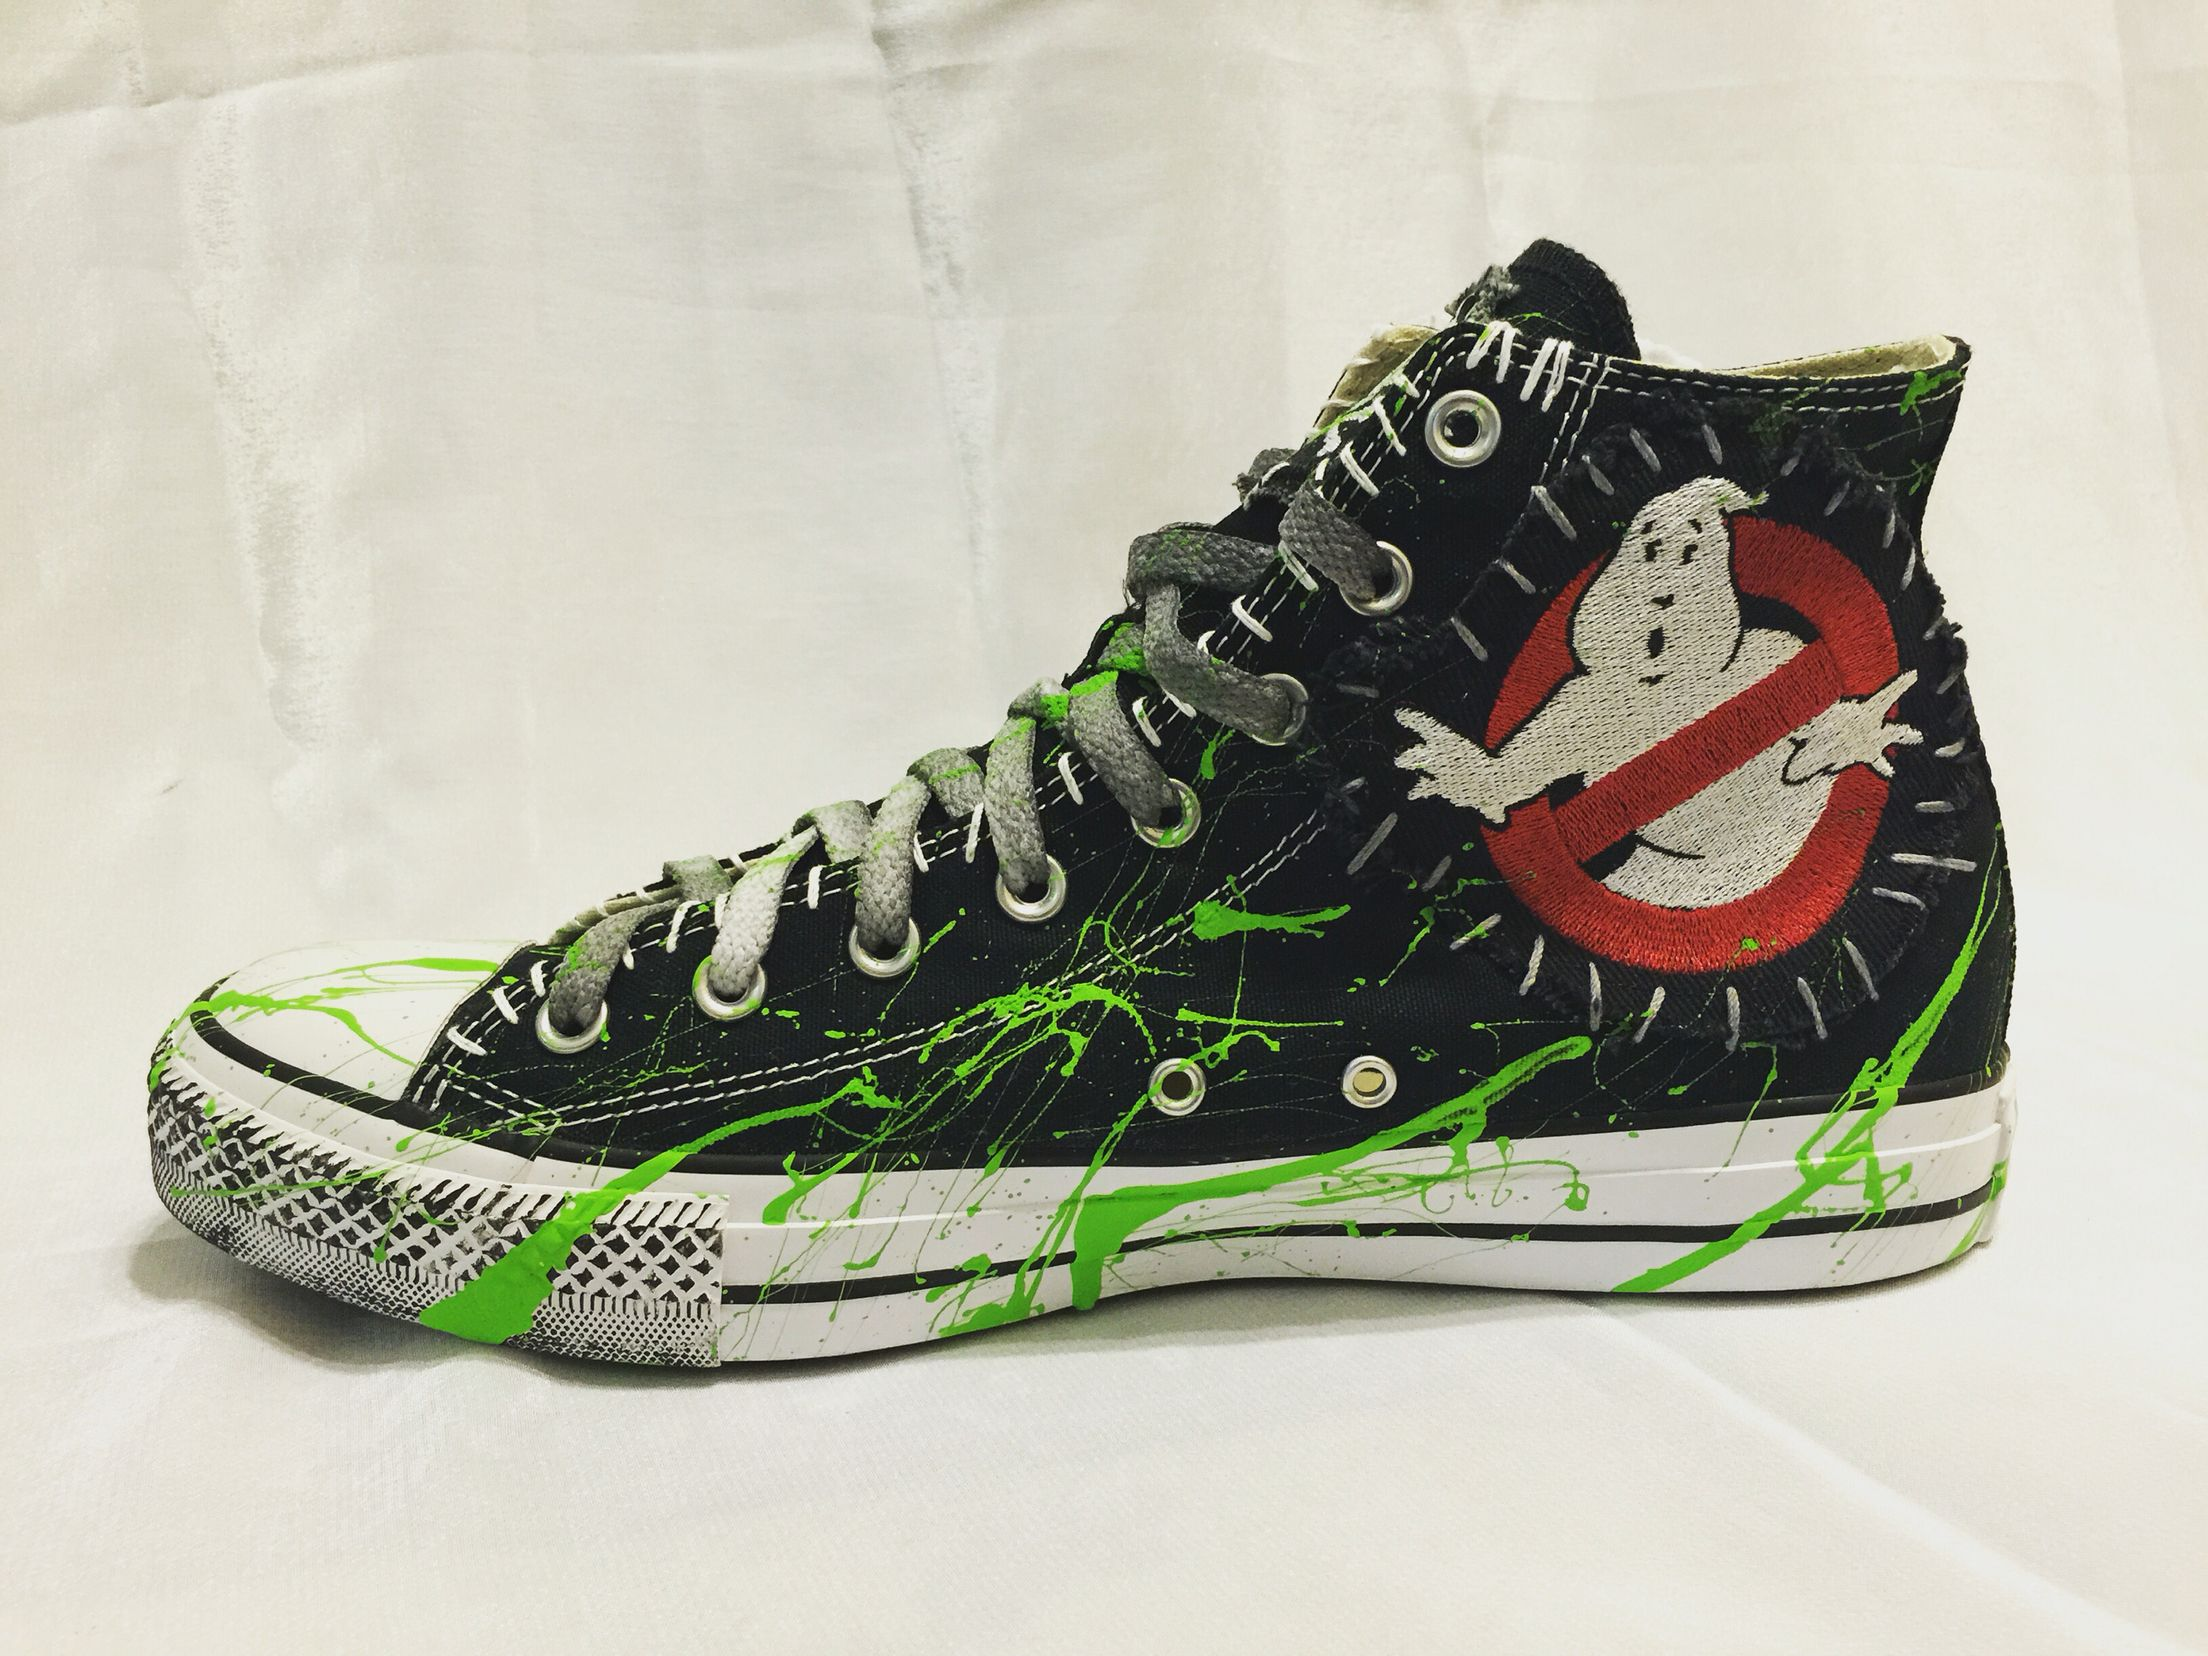 25546c95145a GHOSTBUSTER  All Star  Converse shoes from Chad Cherry Clothing. Horror  icon shoes! Custom shoes!